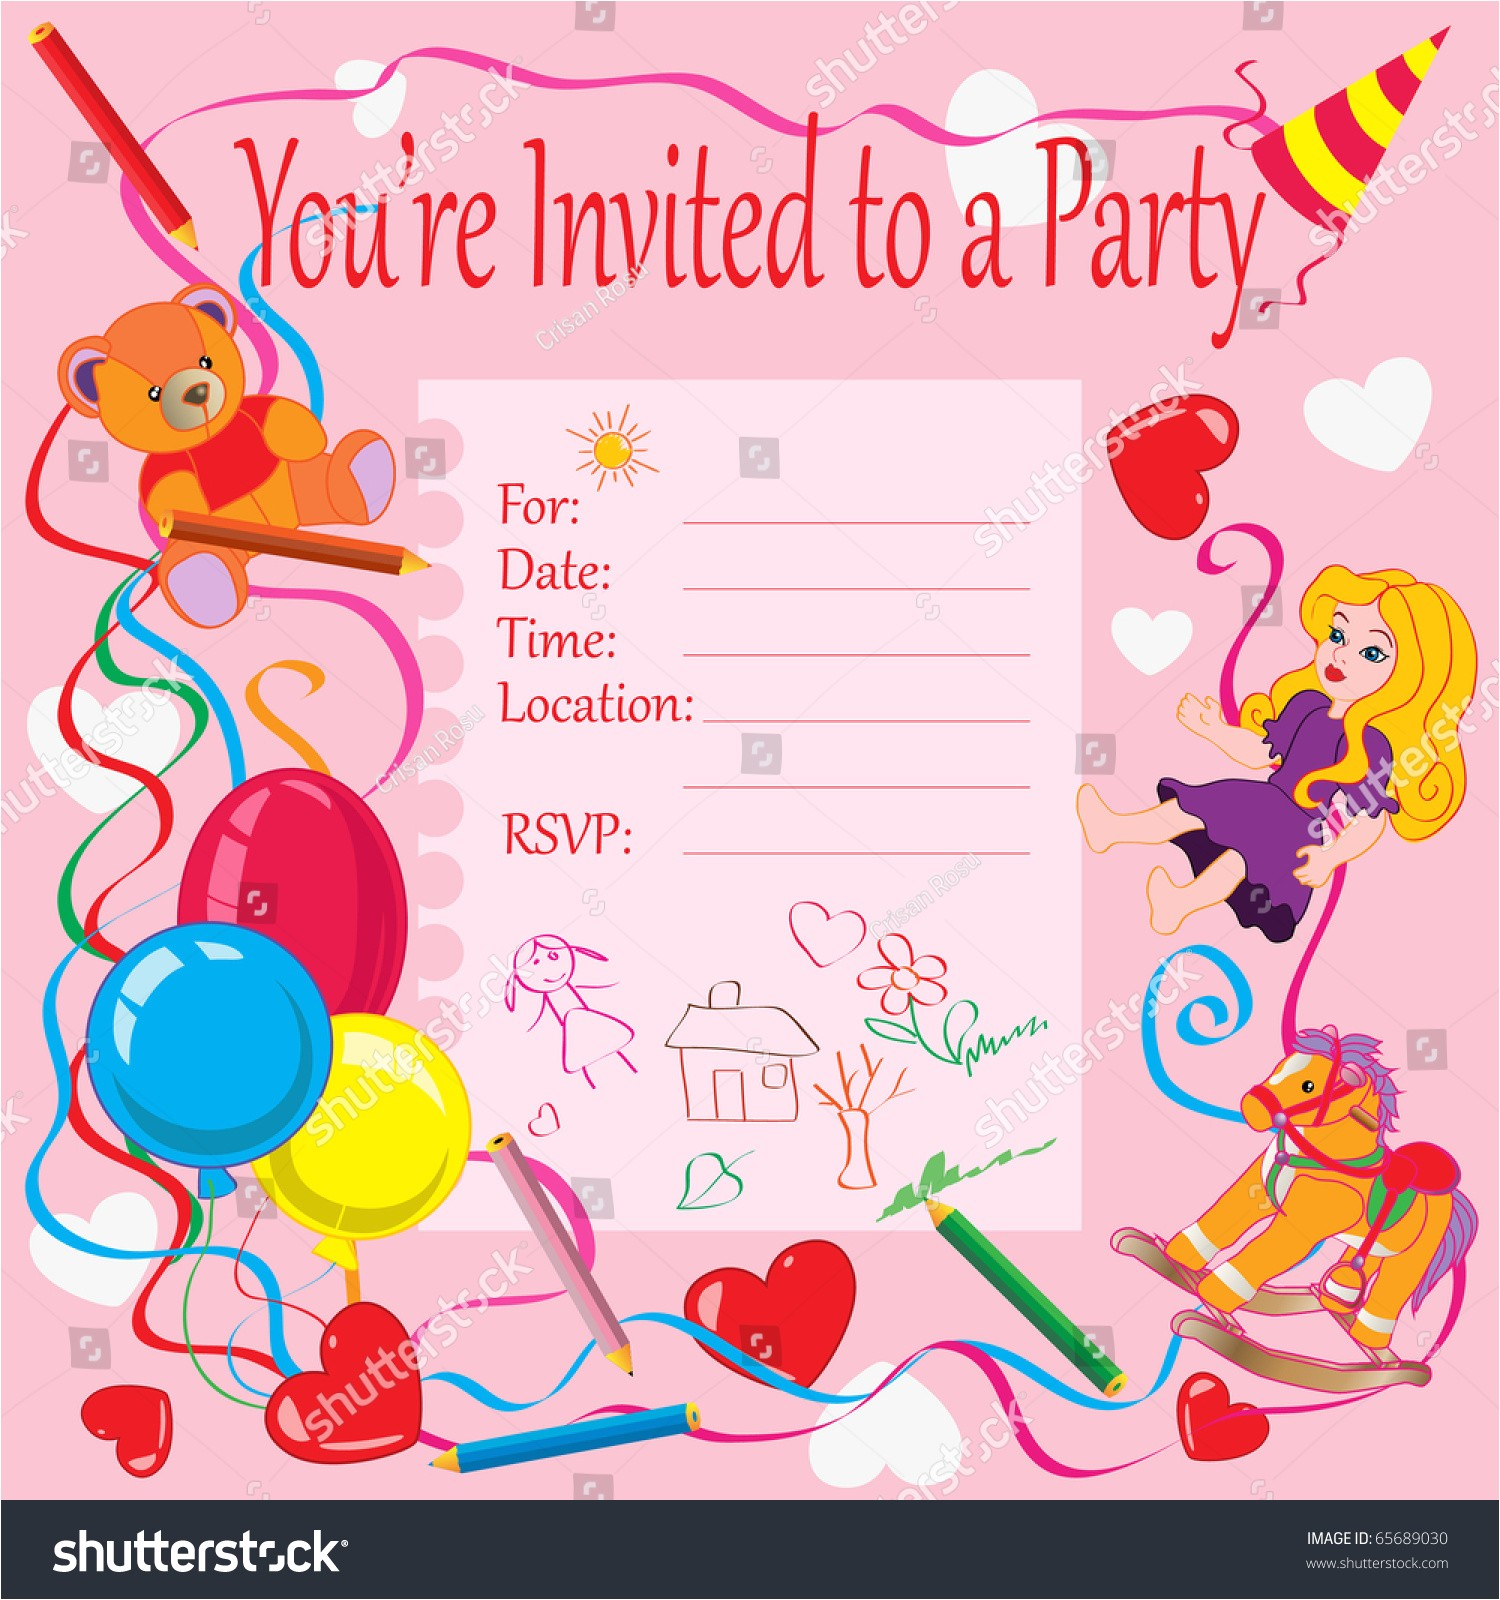 stock vector vector illustration birthday party invitation for kids card concept